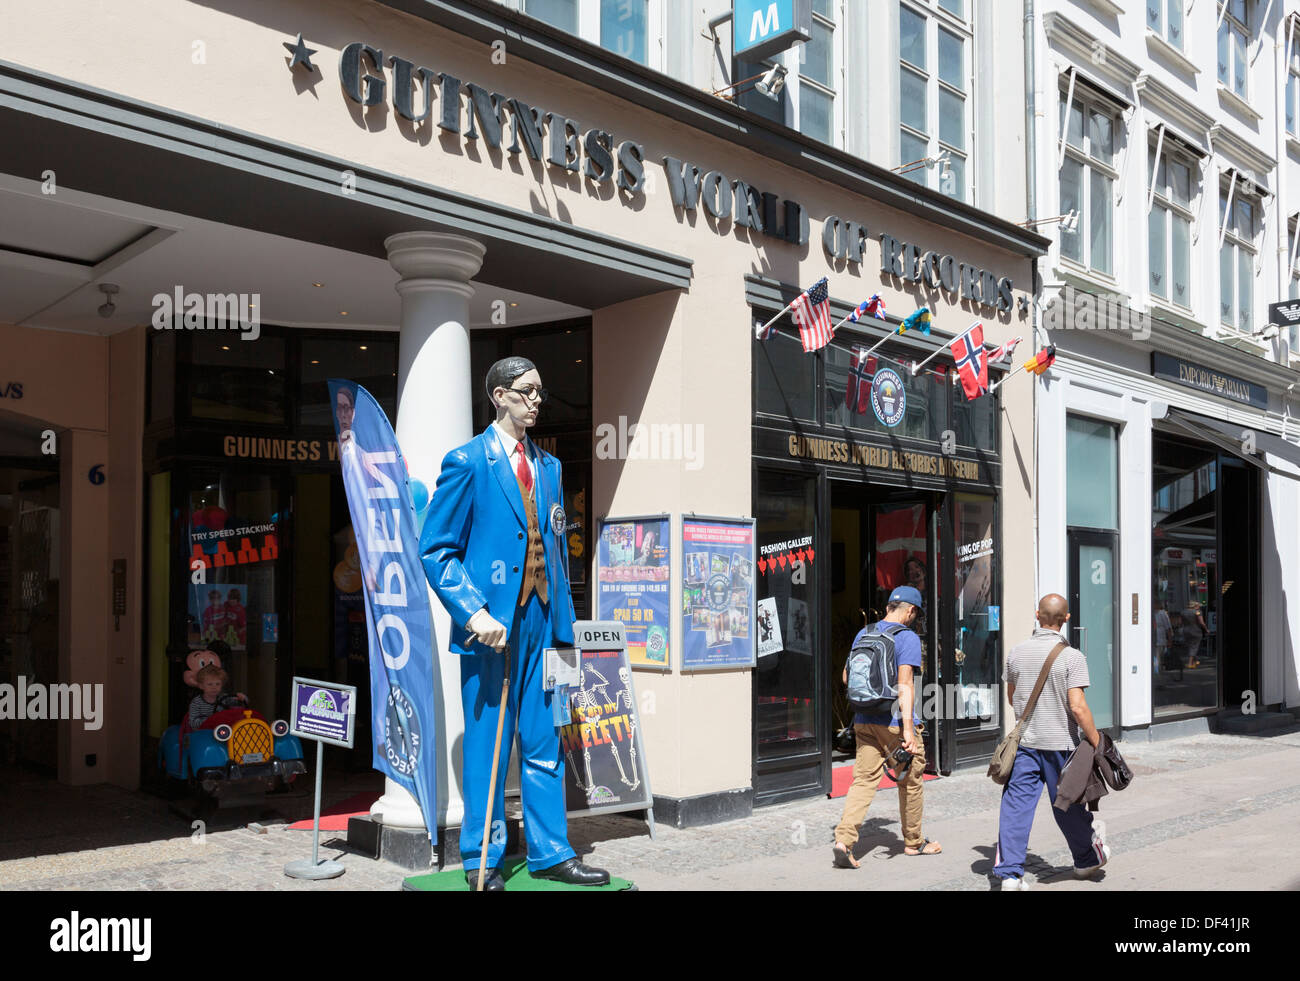 Two people by figure of world's tallest man outside Guinness World of Records museum in Stroget street, Copenhagen, Denmark - Stock Image